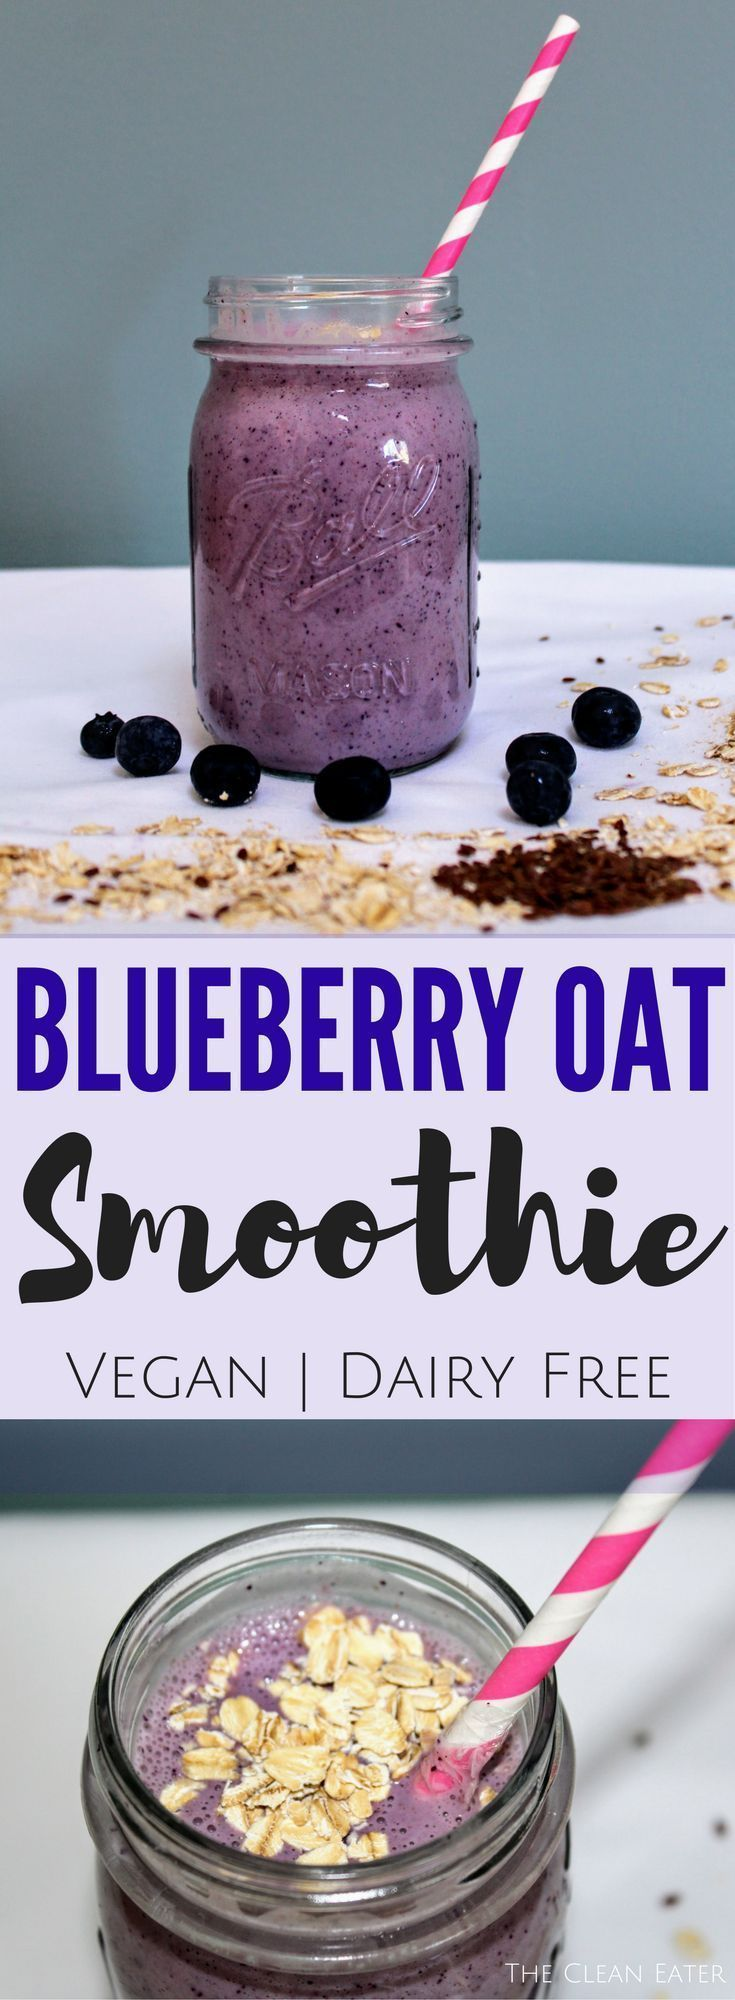 Vegan/ dairy-free Blueberry Oat Smoothie: an easy and delicious recipe for a creamy smoothie bursting with flavor! |smoothies| healthy breakfast| clean eating| thecleaneater.com